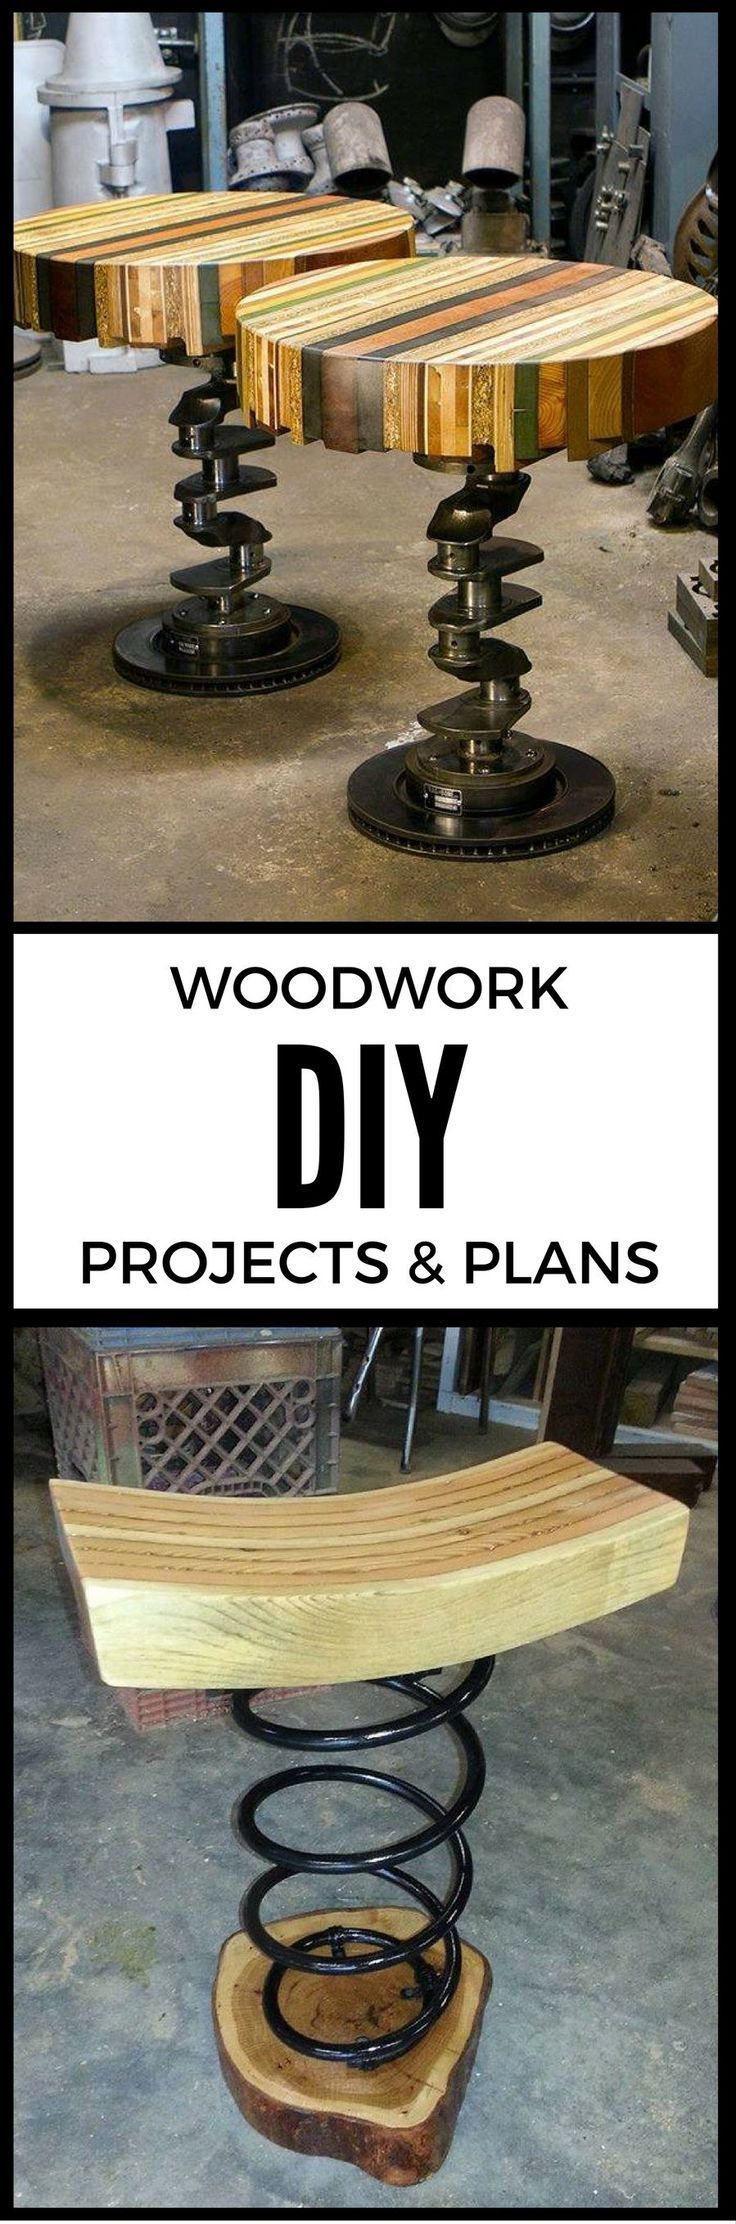 75 best banc images on Pinterest | Carpentry, Wood projects and ...